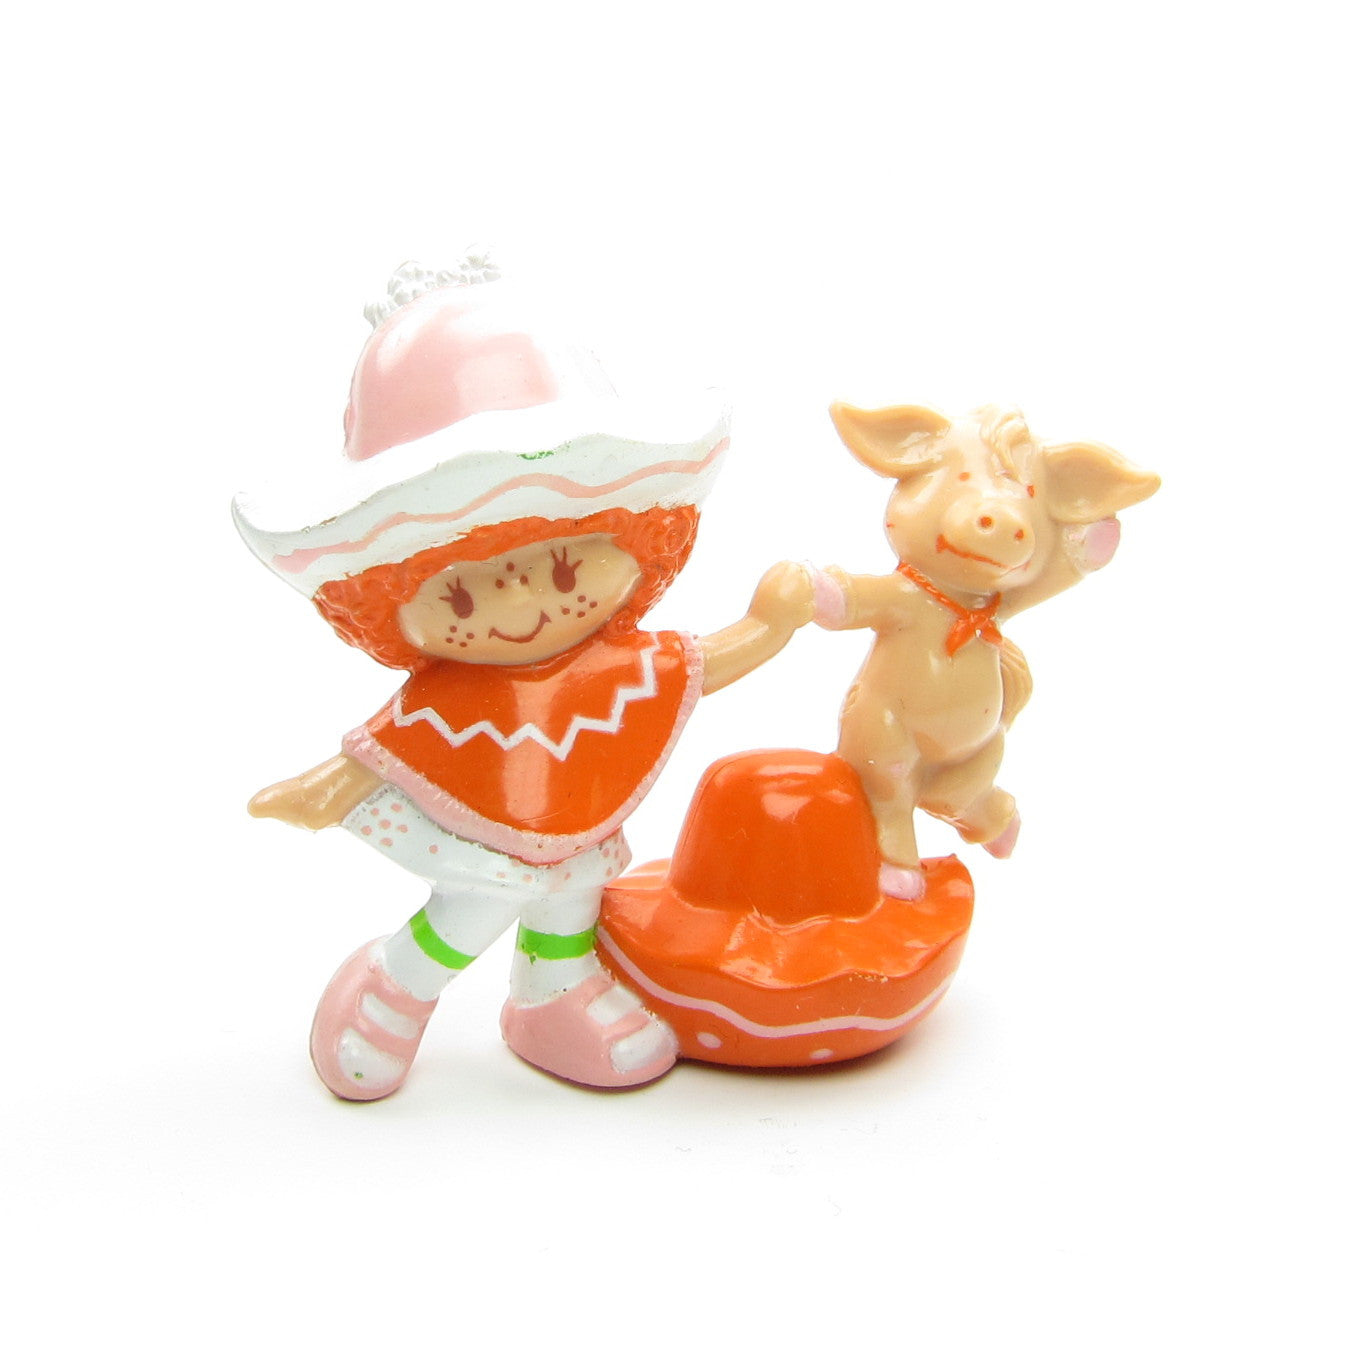 Cafe Ole Dancing with Burrito miniature figurine